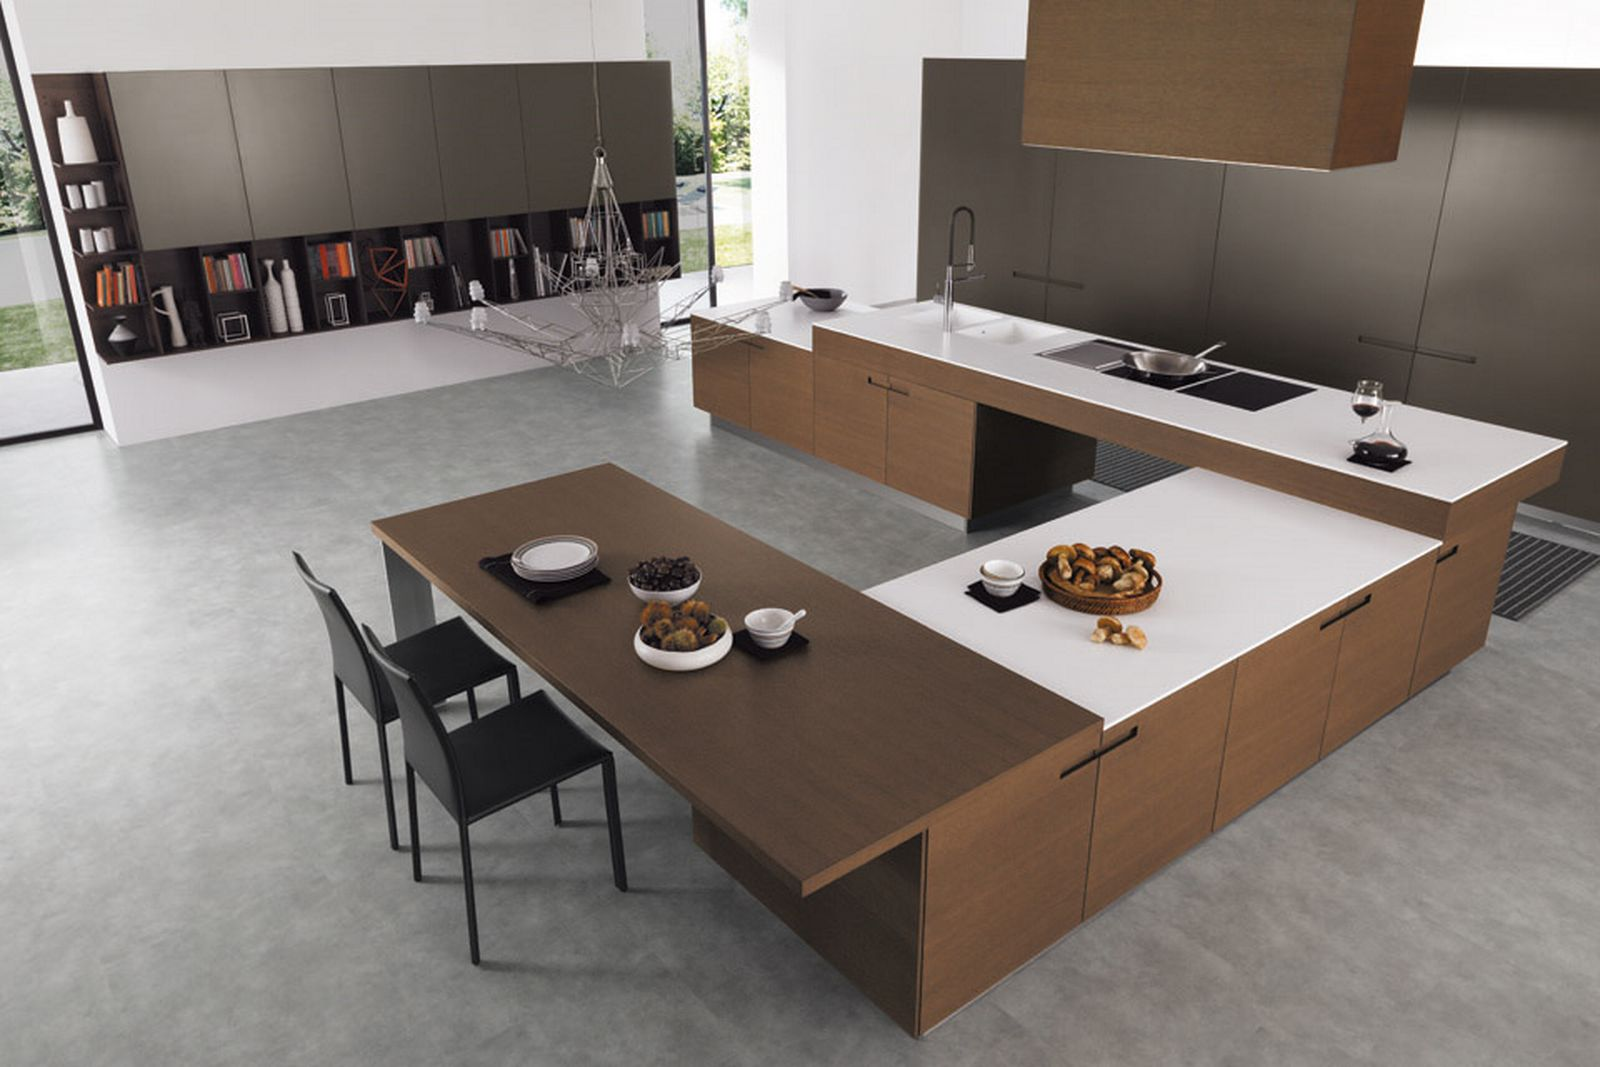 Minimalist kitchen space minimalism is simple easy Home design inspiration